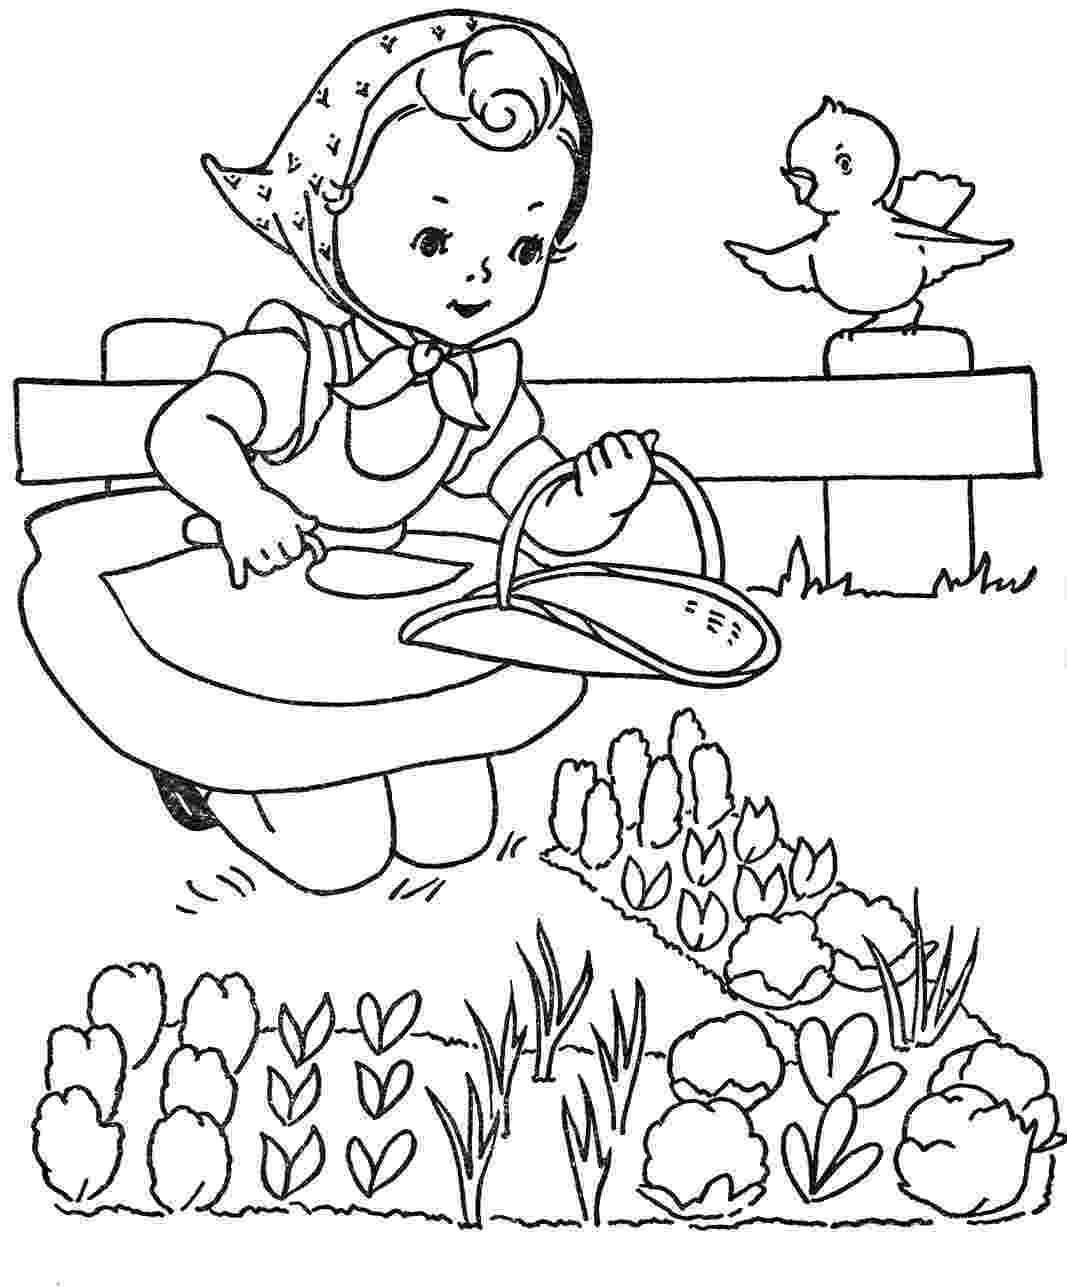 gardening colouring pages favorite paint book little girls q is for quilter colouring pages gardening